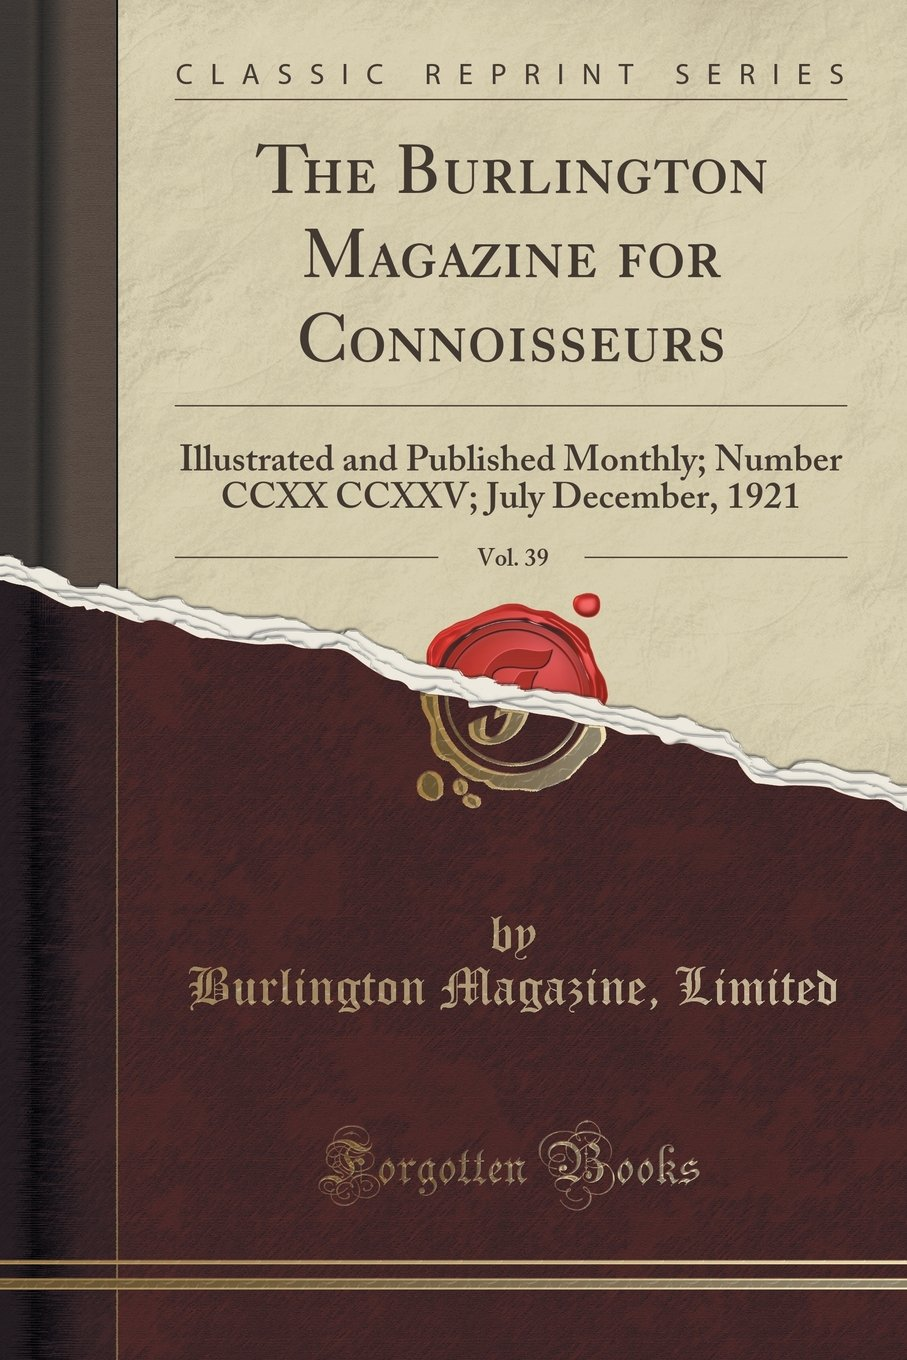 Download The Burlington Magazine for Connoisseurs, Vol. 39: Illustrated and Published Monthly; Number CCXX CCXXV; July December, 1921 (Classic Reprint) ebook